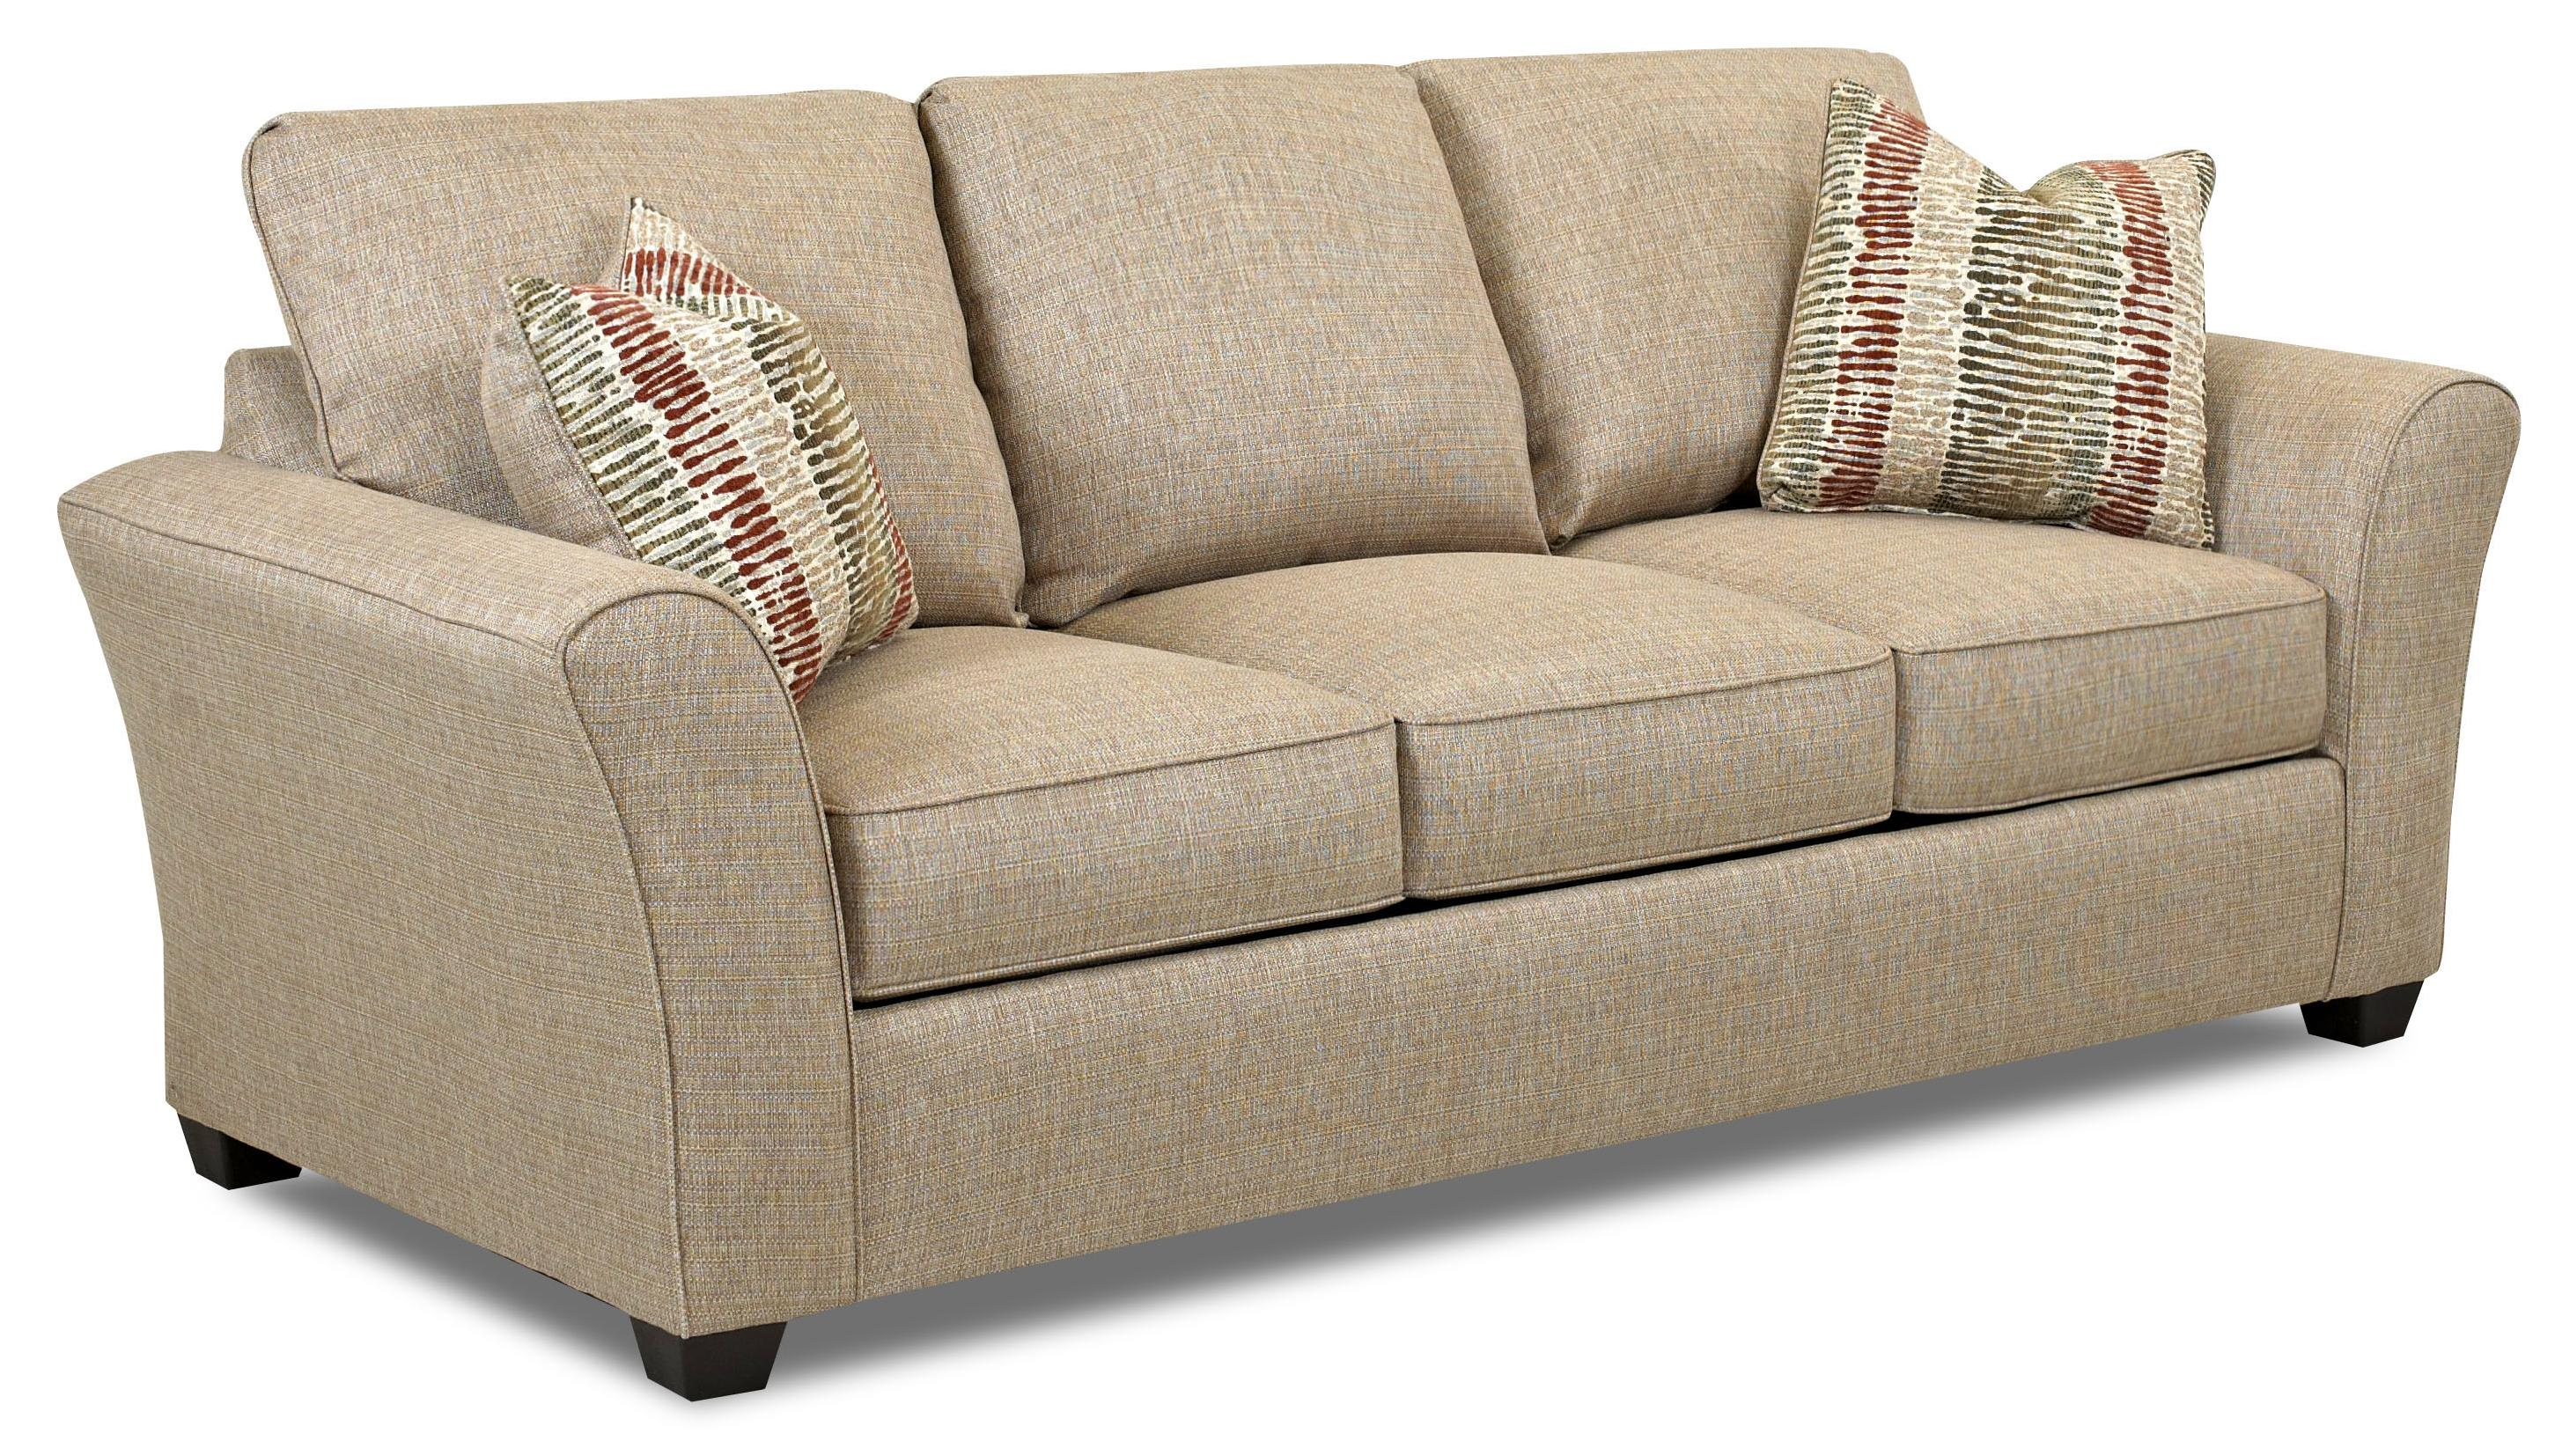 Transitional Dreamquest Queen Sleeper Sofa by Klaussner